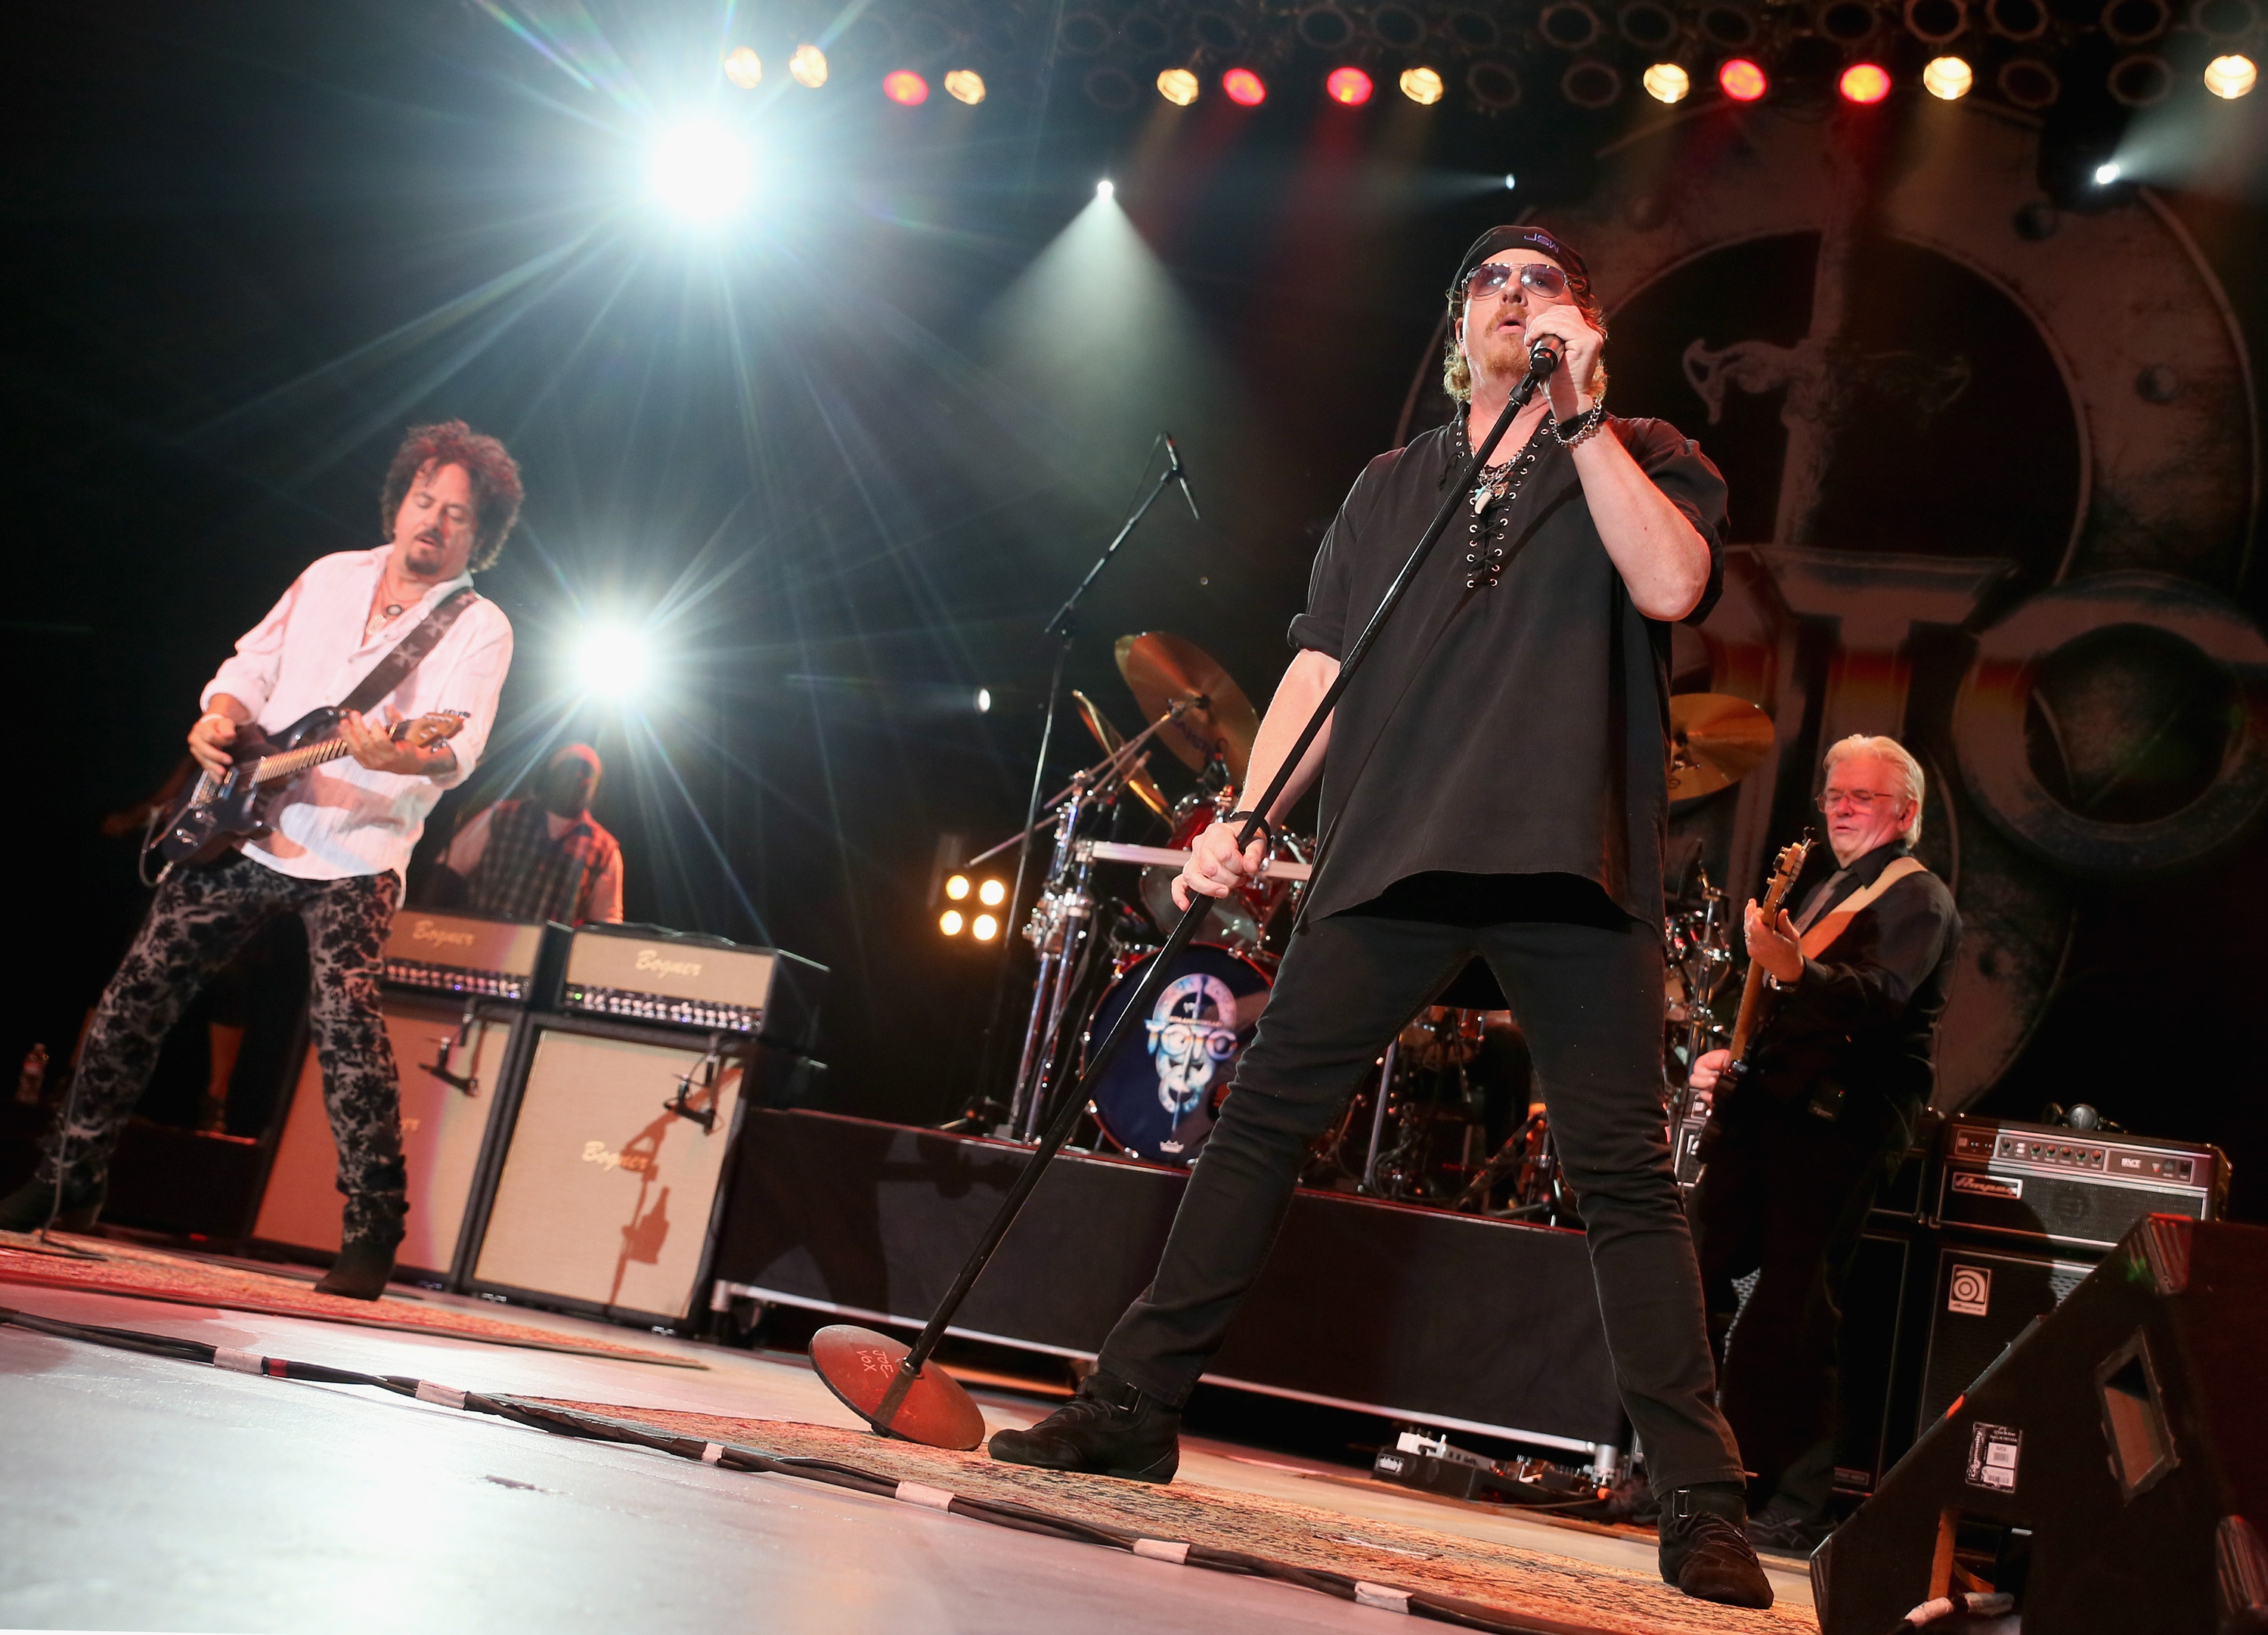 LOS ANGELES, CA - AUGUST 07: (L-R) Steve Lukather, Joseph Williams and David Hungate of Toto perform at The Greek Theatre on